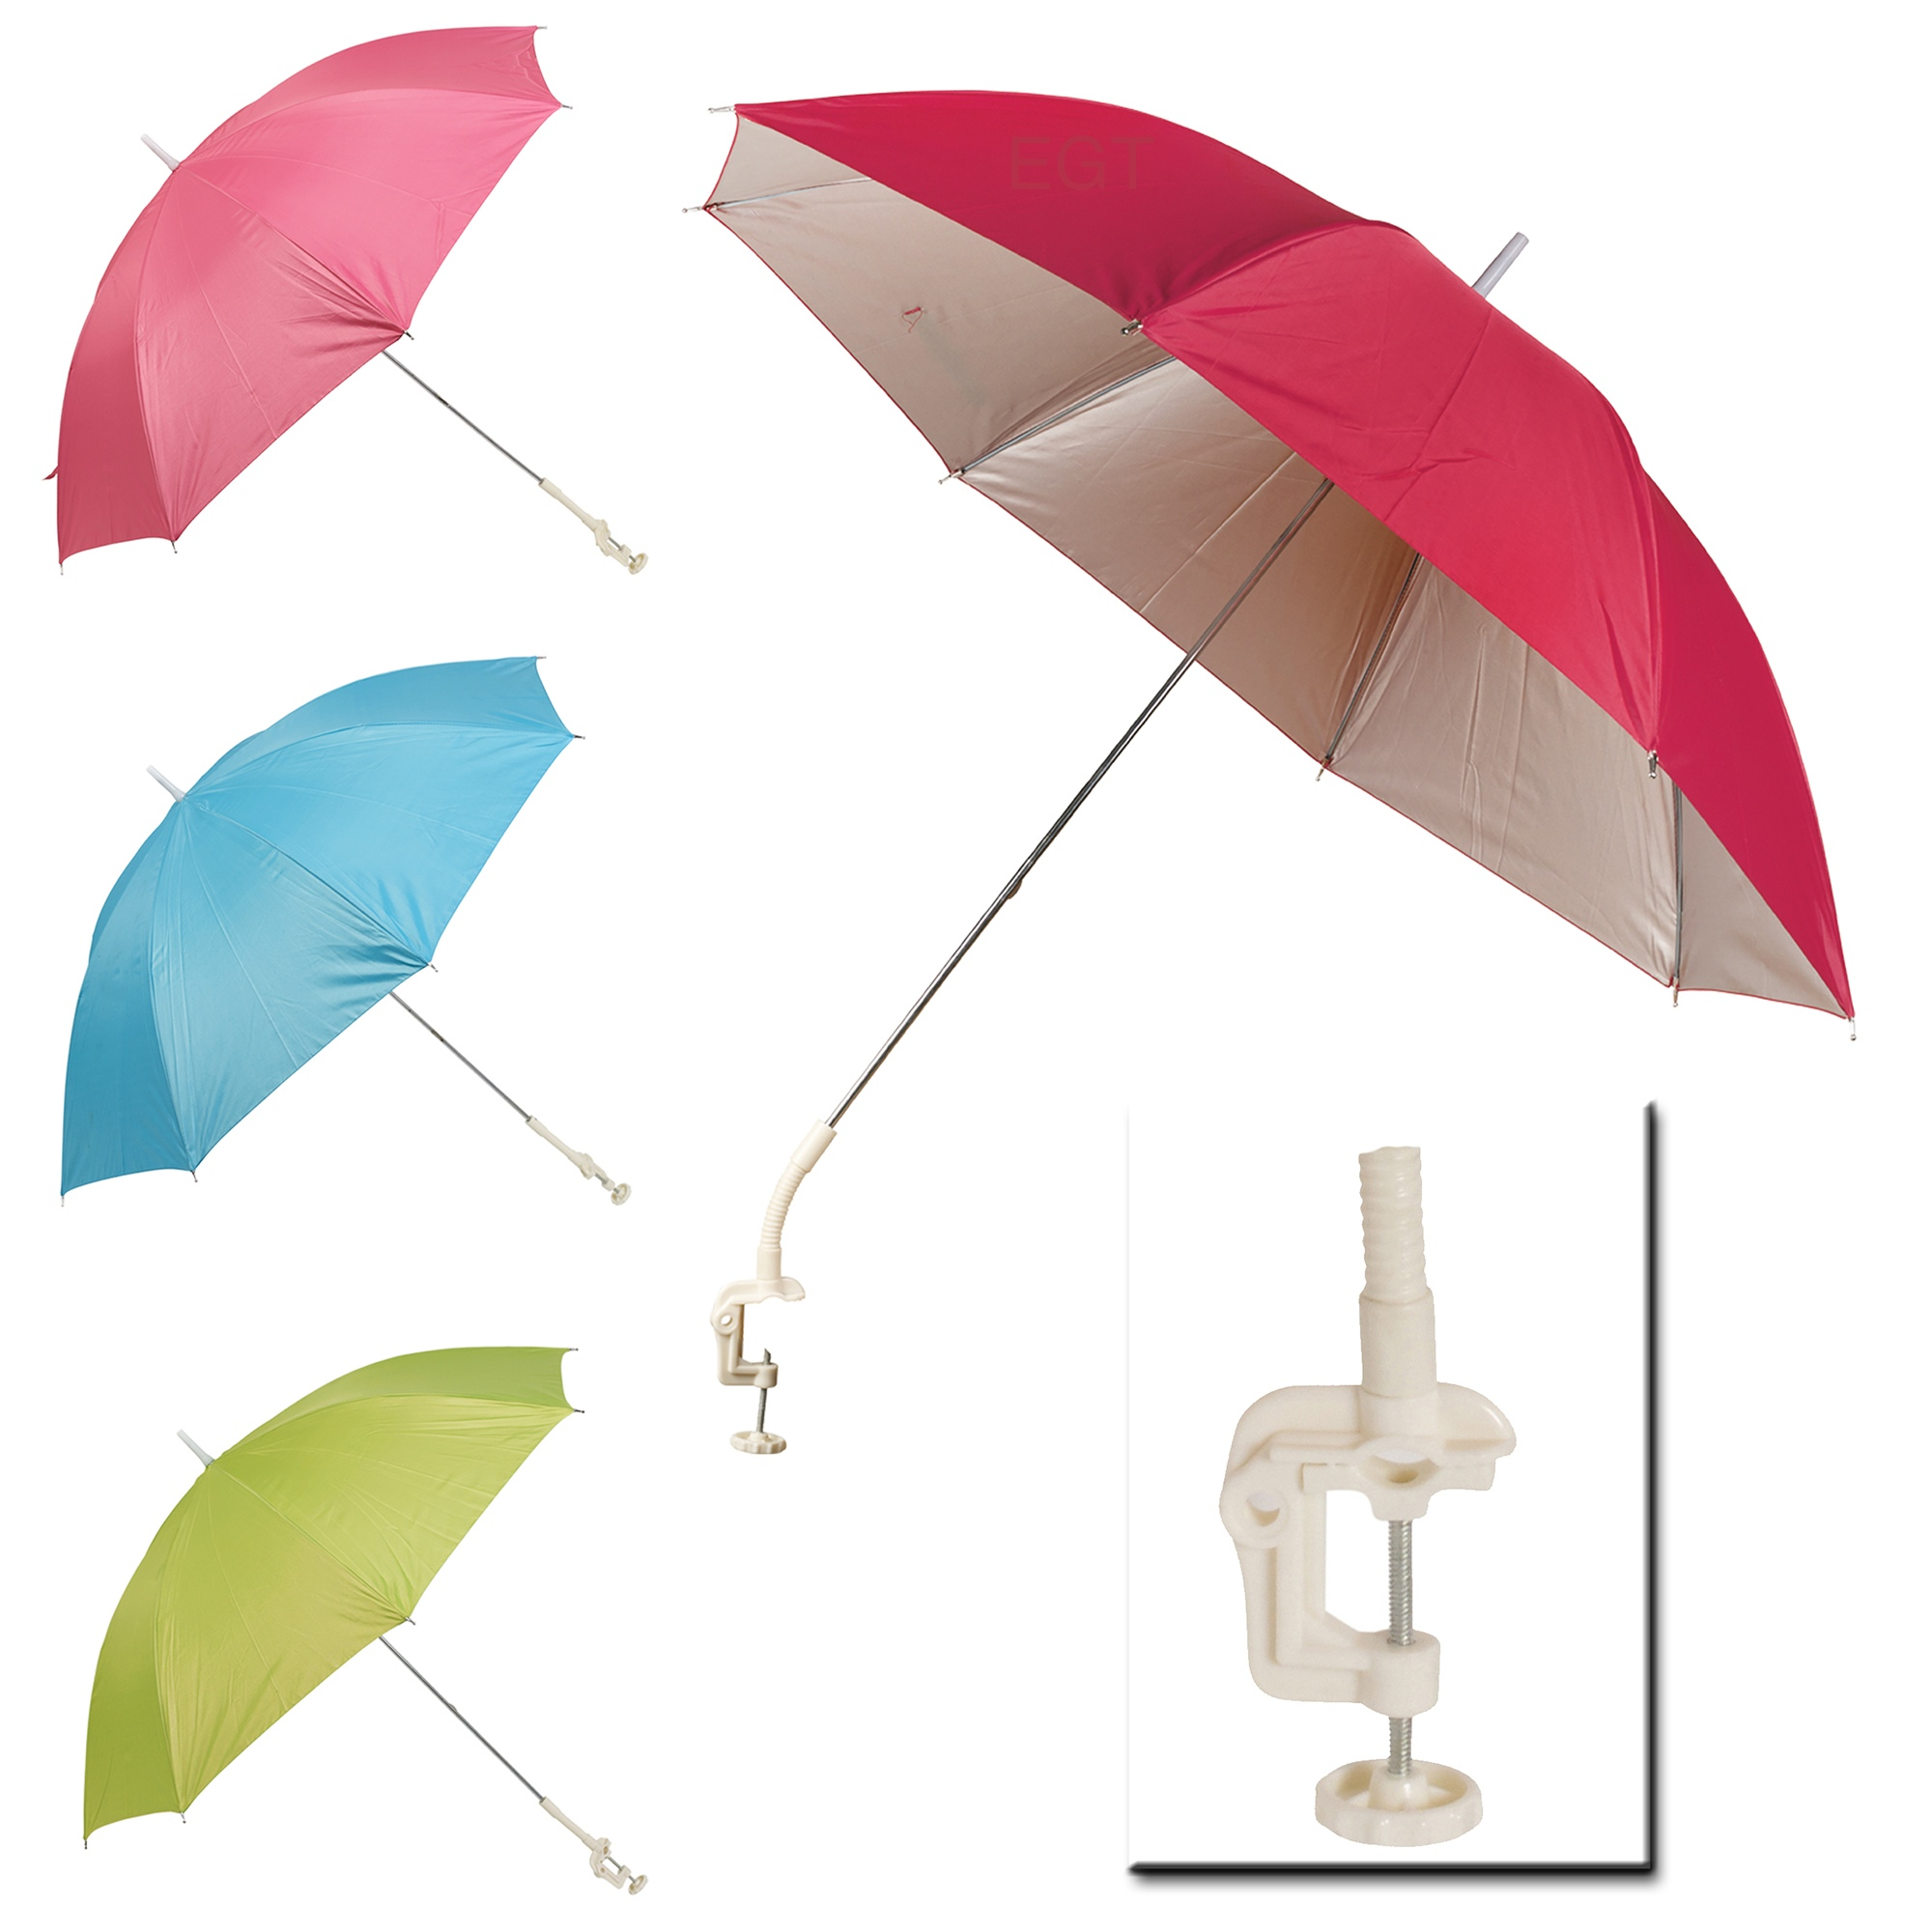 clip on screw clamp garden parasol sunshade balcony sun uv protection umbrella ebay. Black Bedroom Furniture Sets. Home Design Ideas